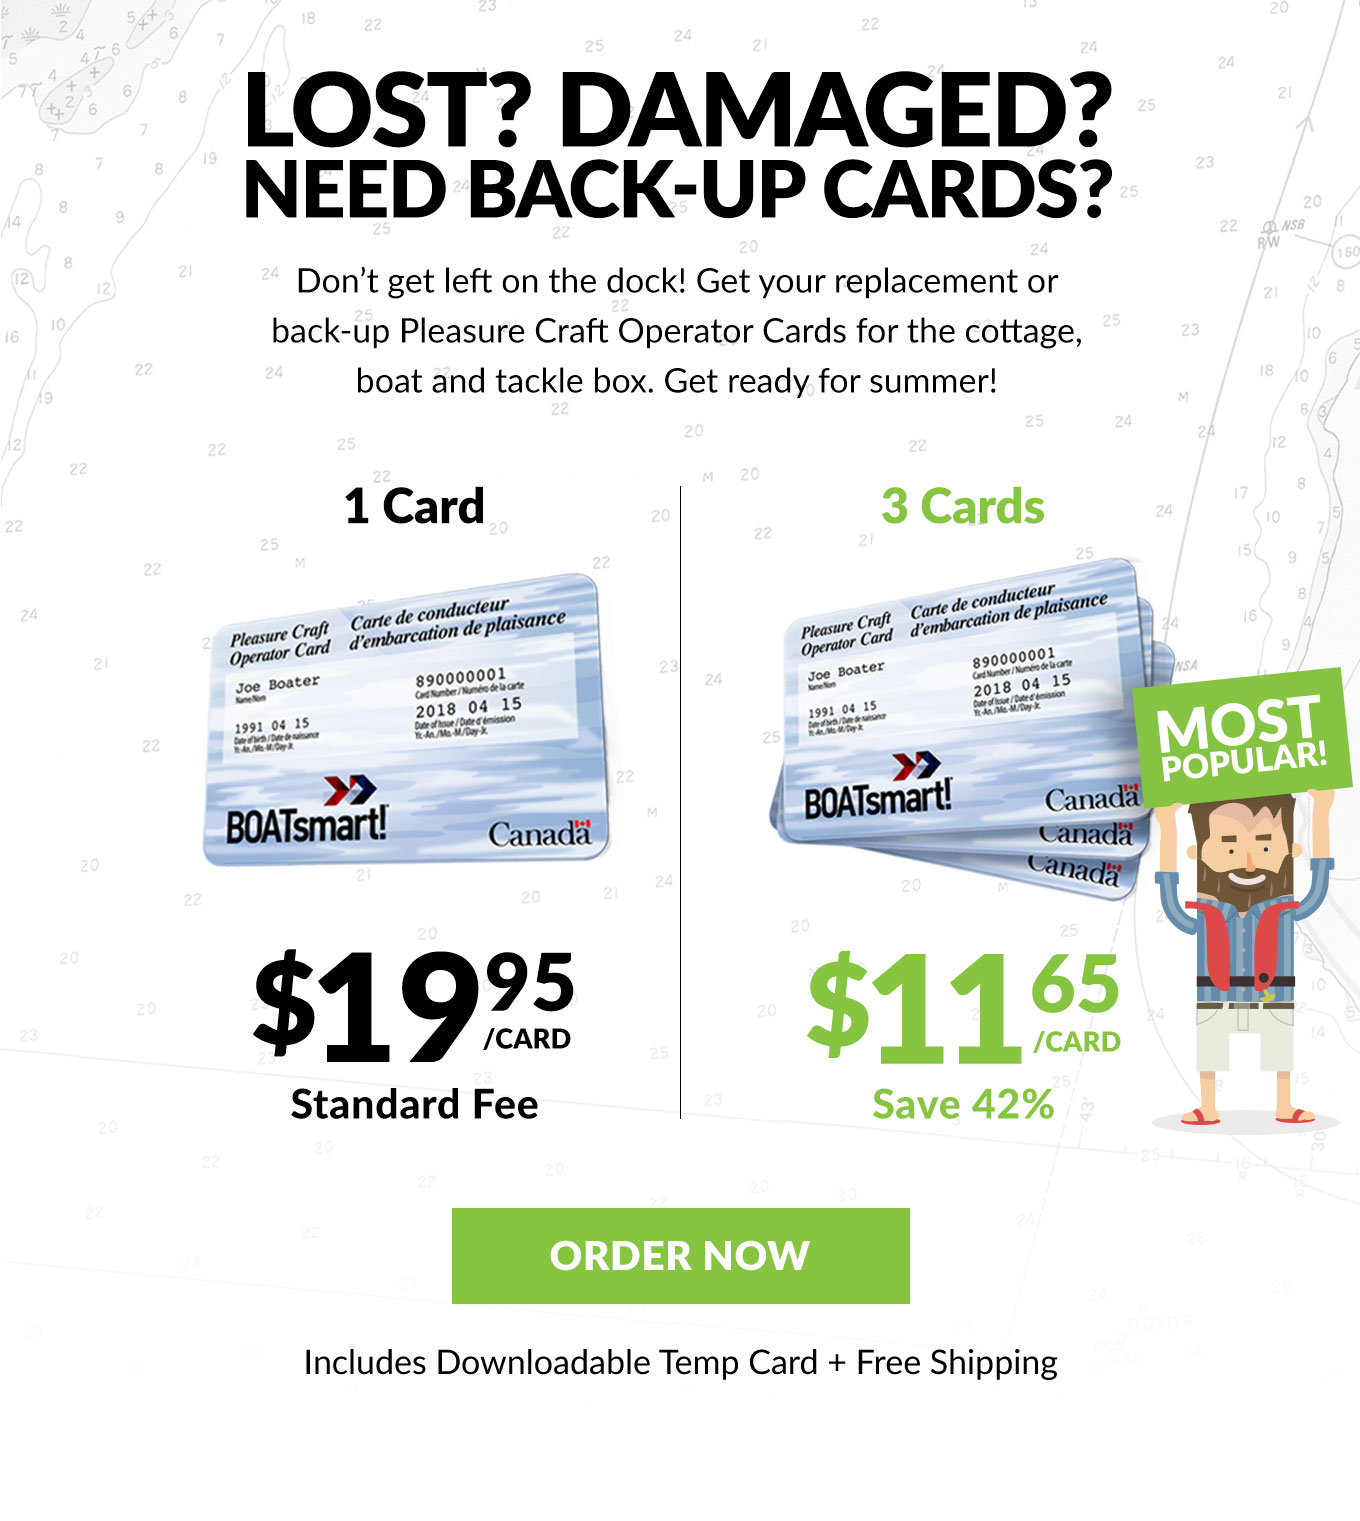 Lost? Damaged? Need Back-Up Cards, Save 42% Today!